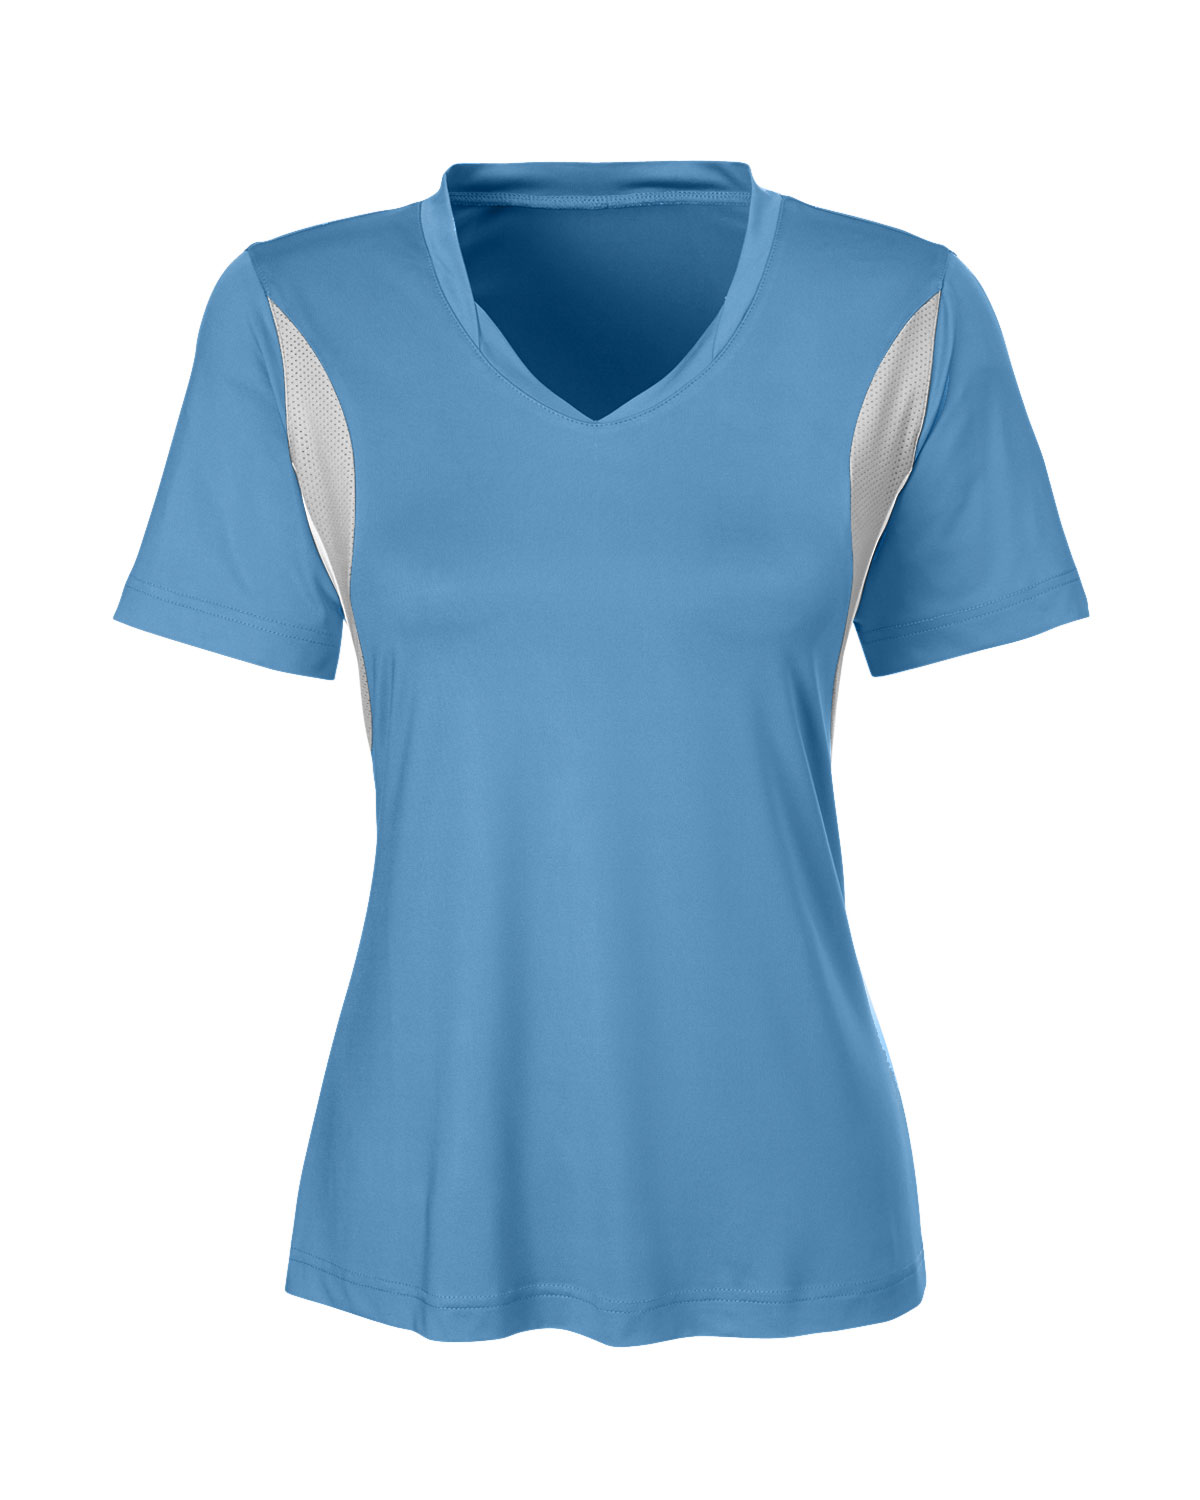 Team 365 Ladies Athletic V-Neck Tournament Jersey